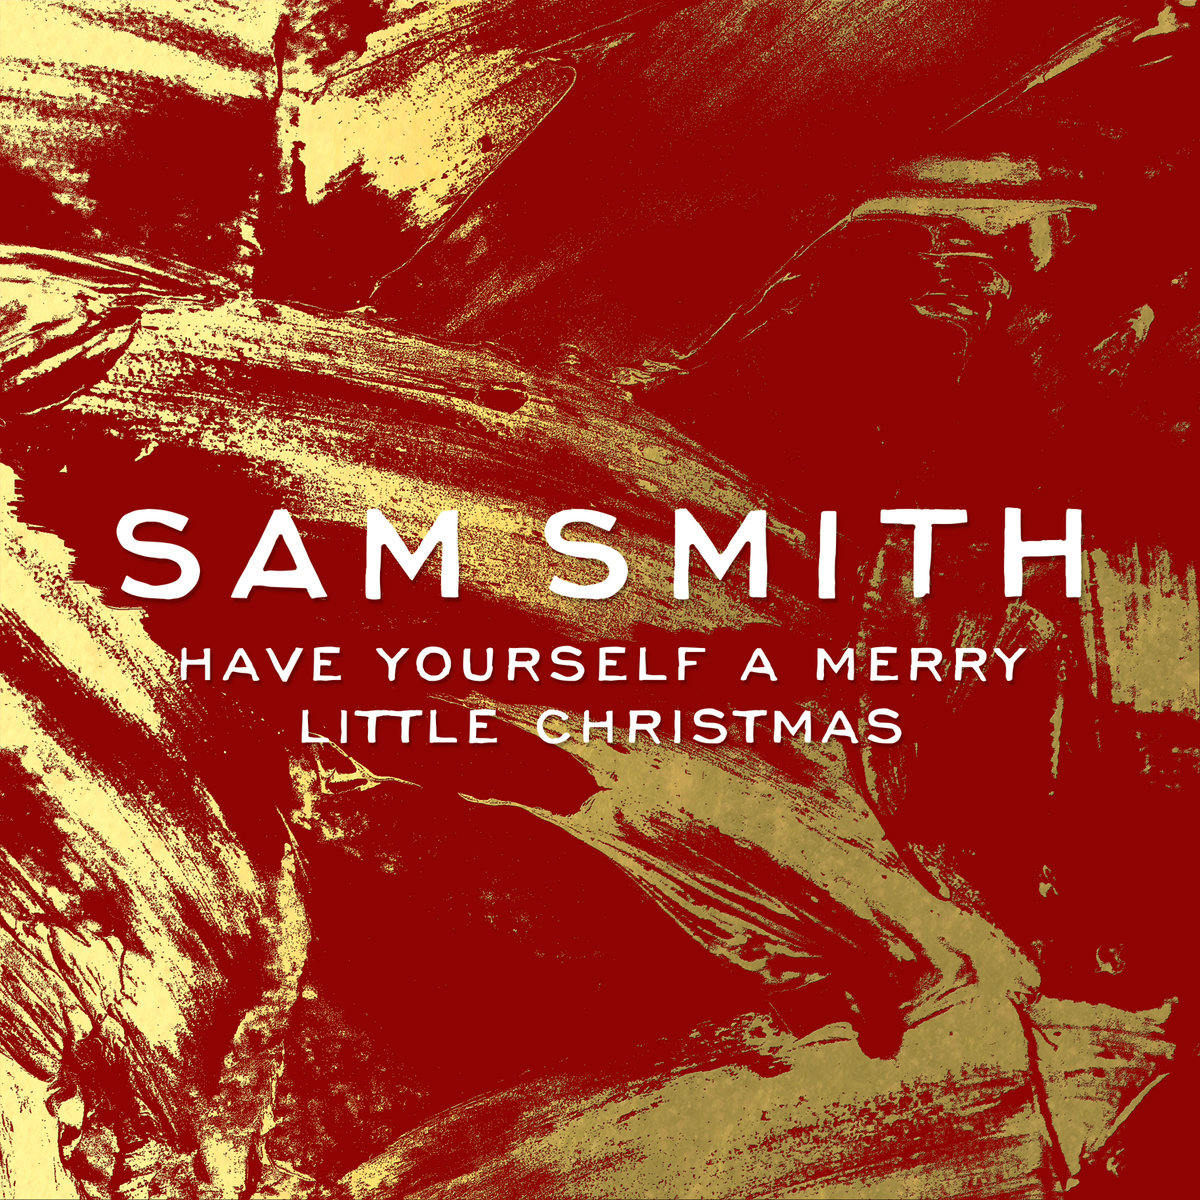 Have Yourself A Merry Little ChristmasSam Smith